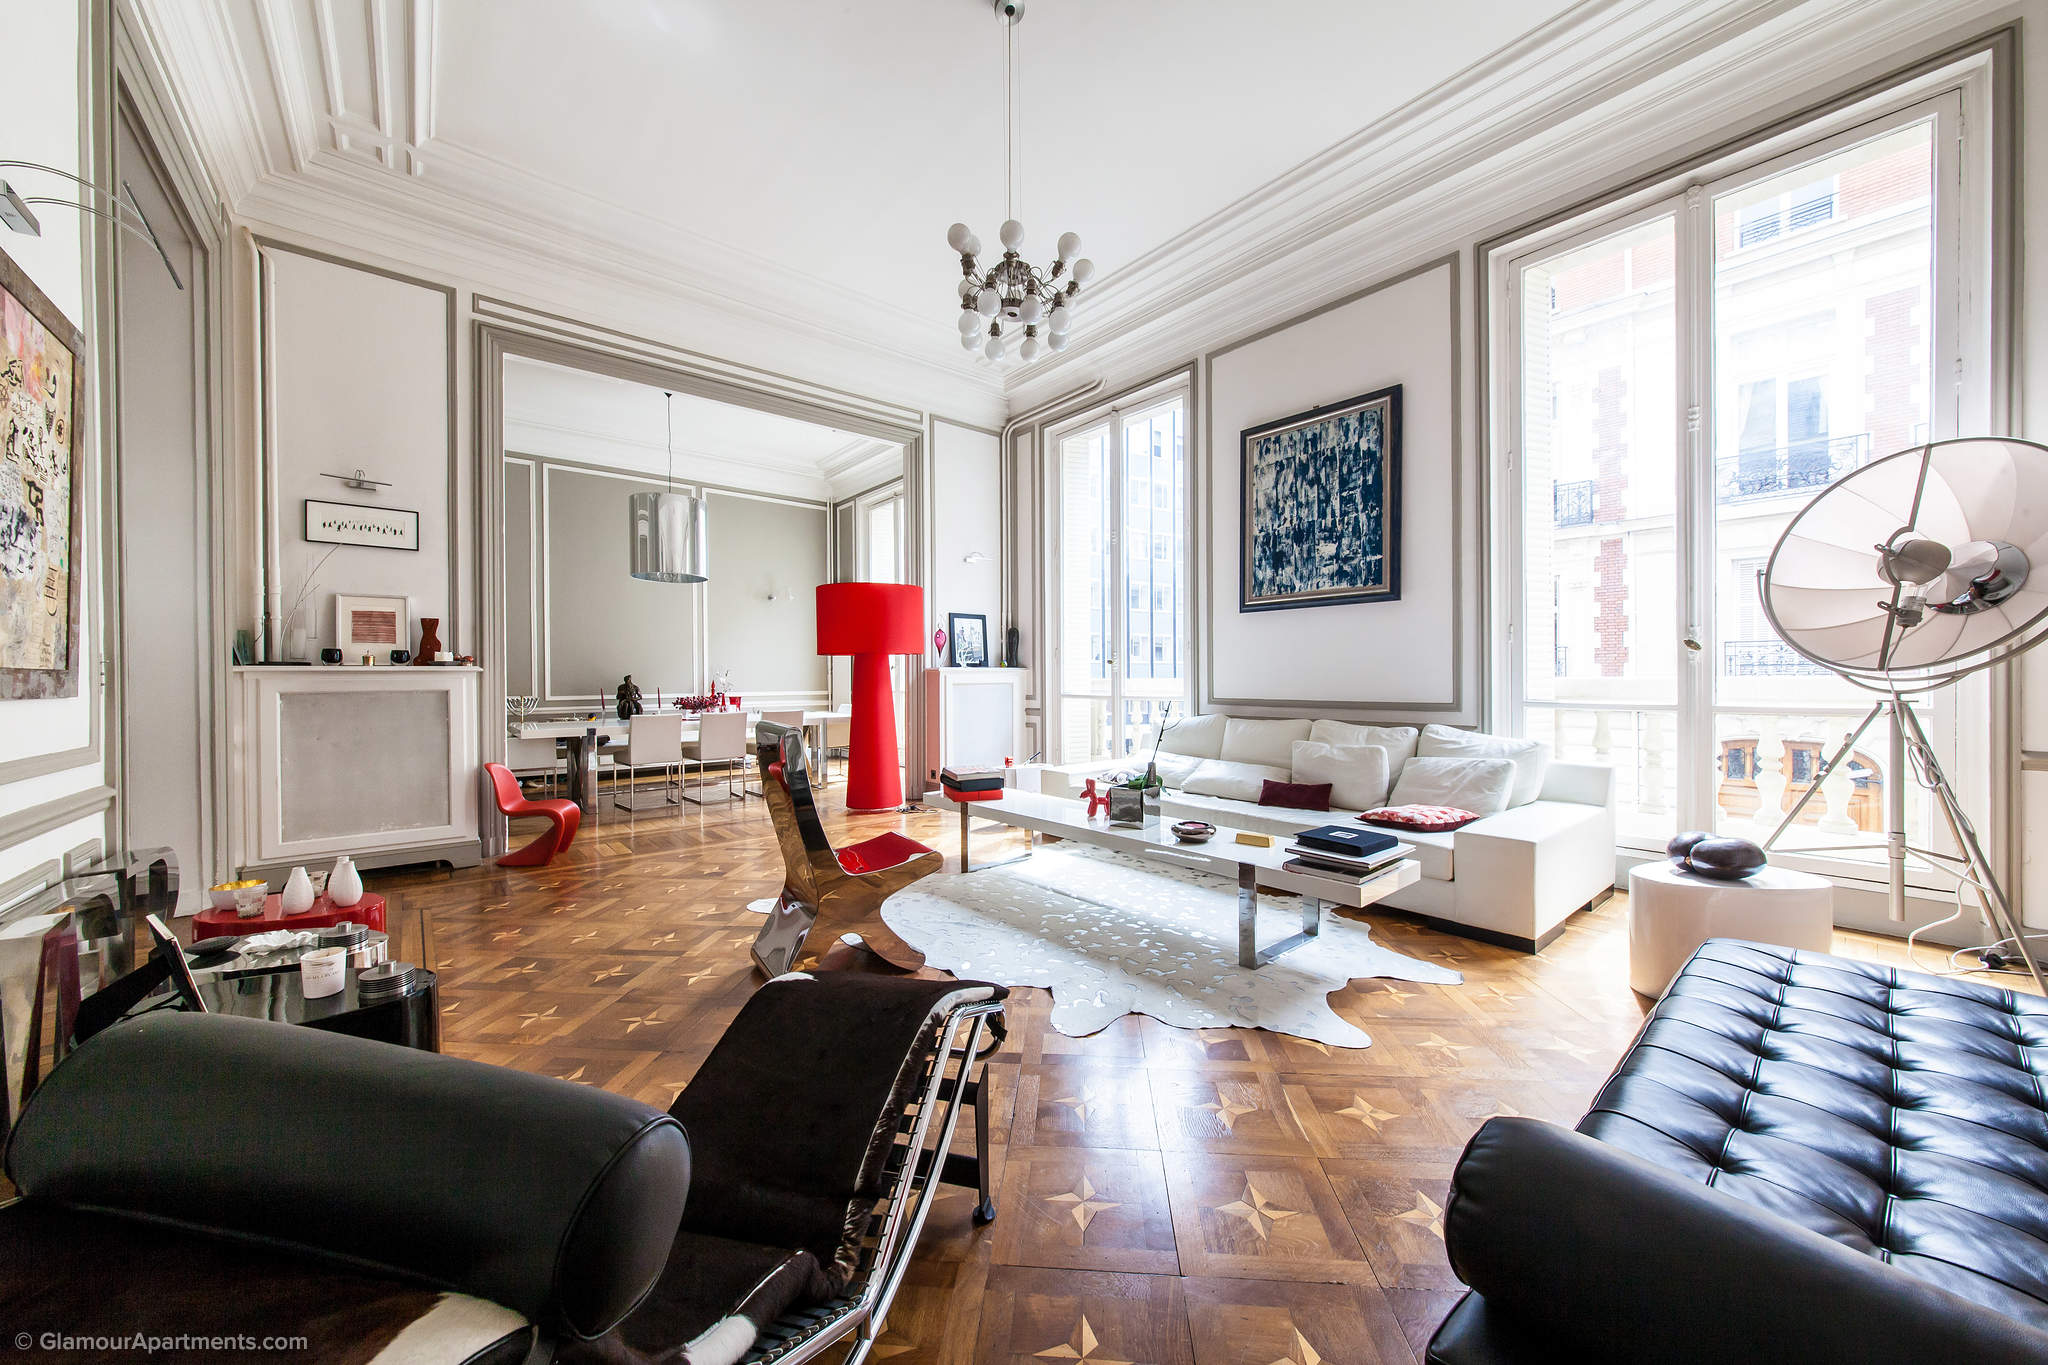 Lovely Parisian Apartment In An Authentic Parisian Setting